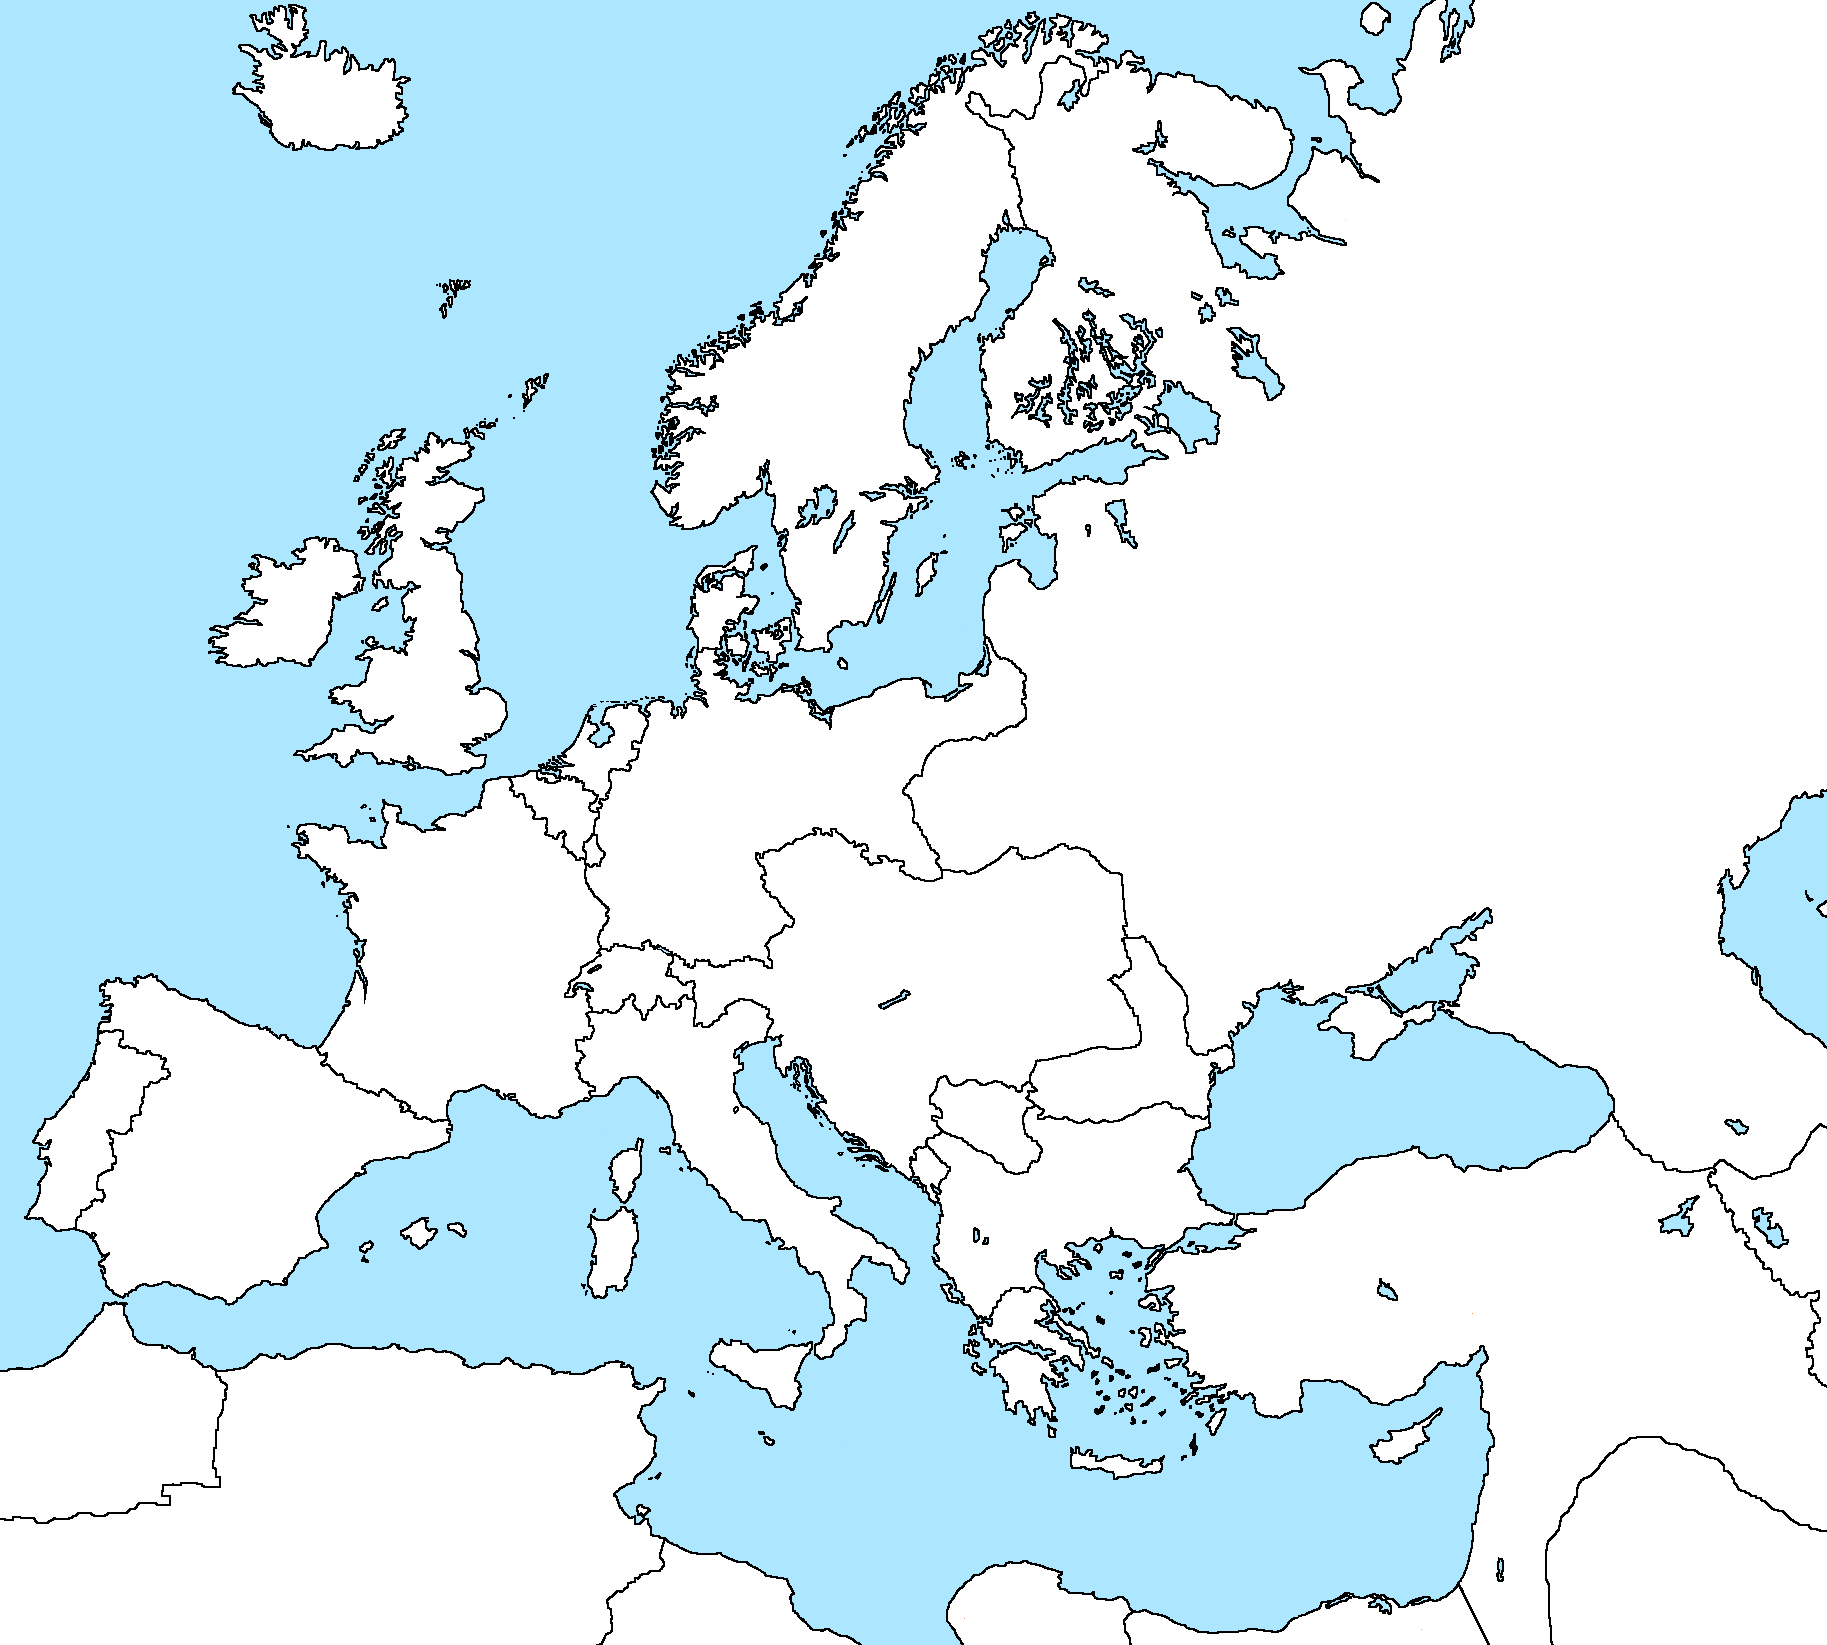 Blank Map of Europe 1900